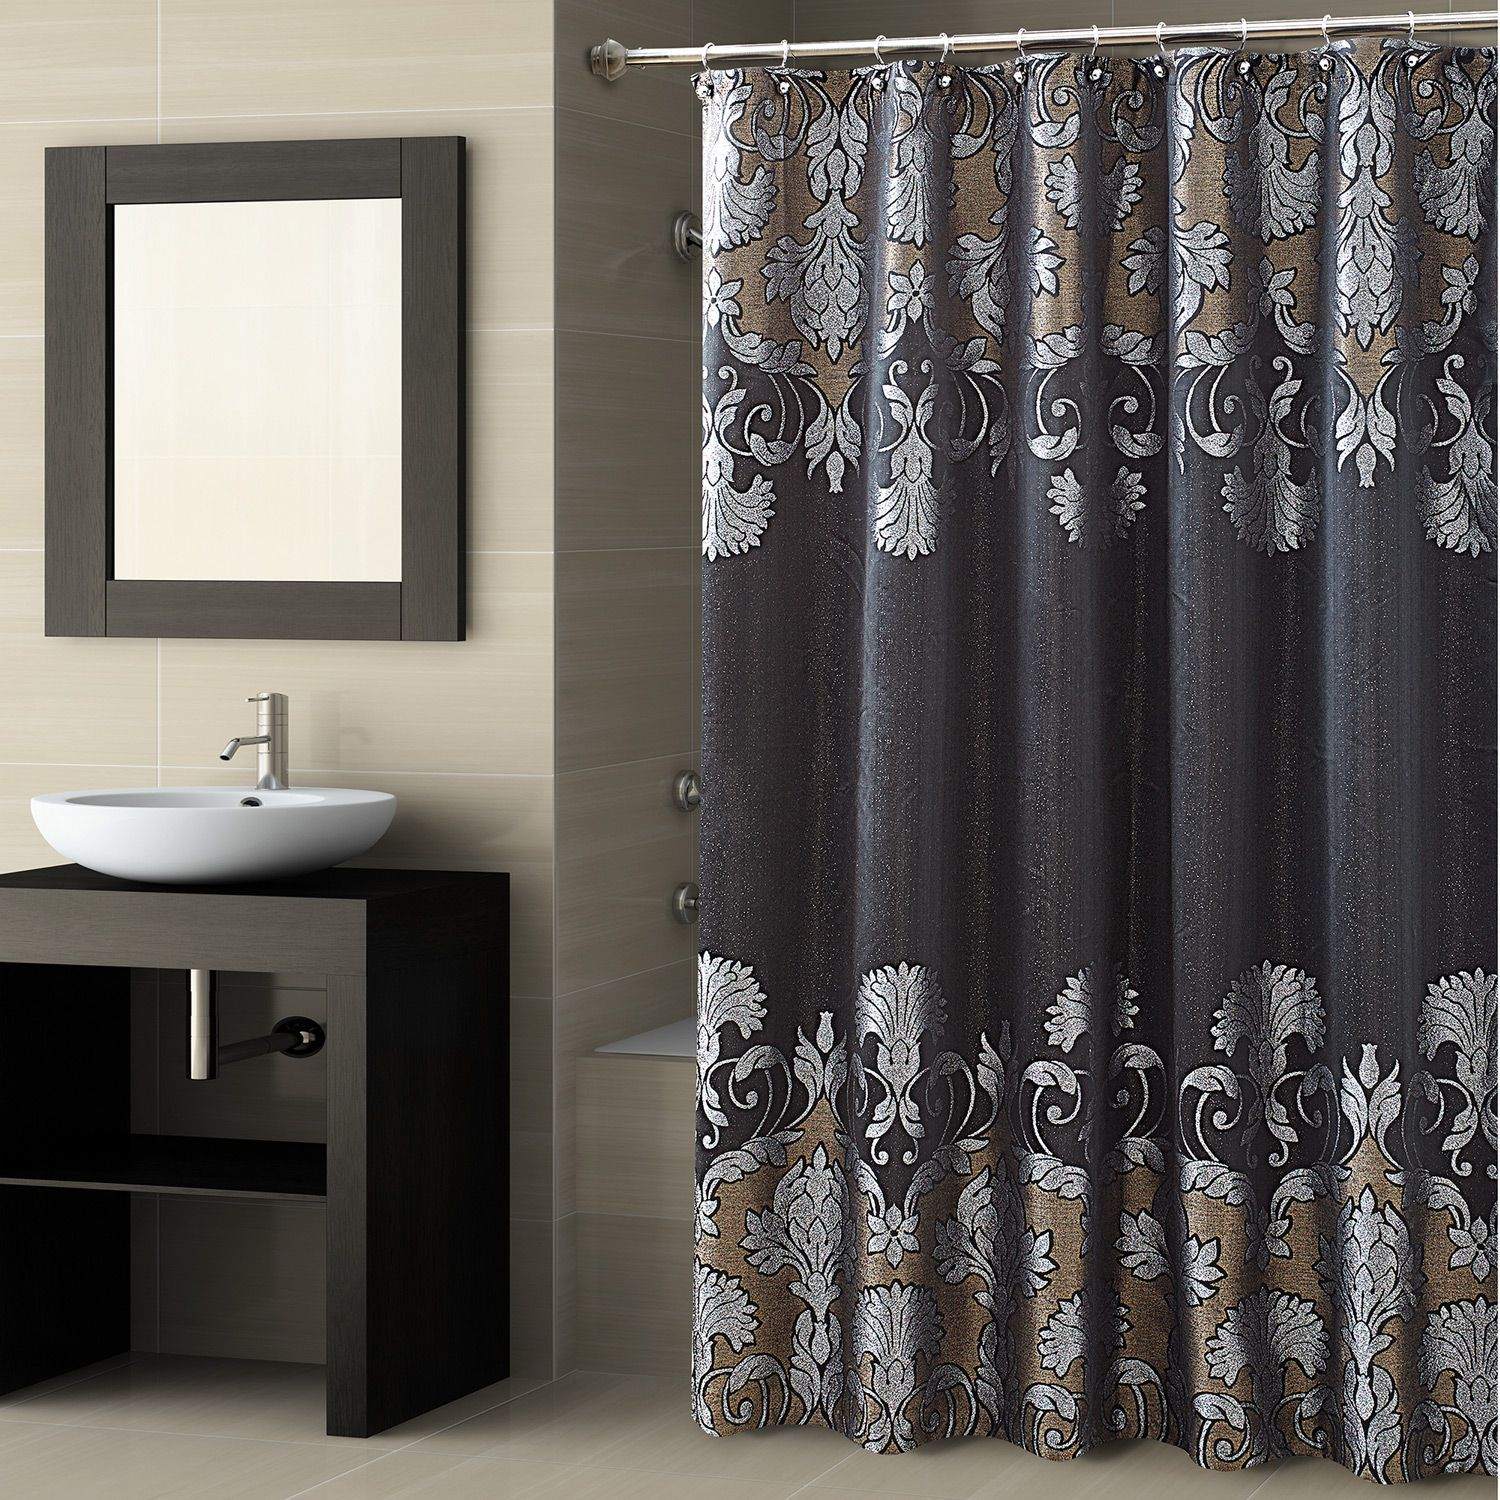 Awesome designer shower curtains clear